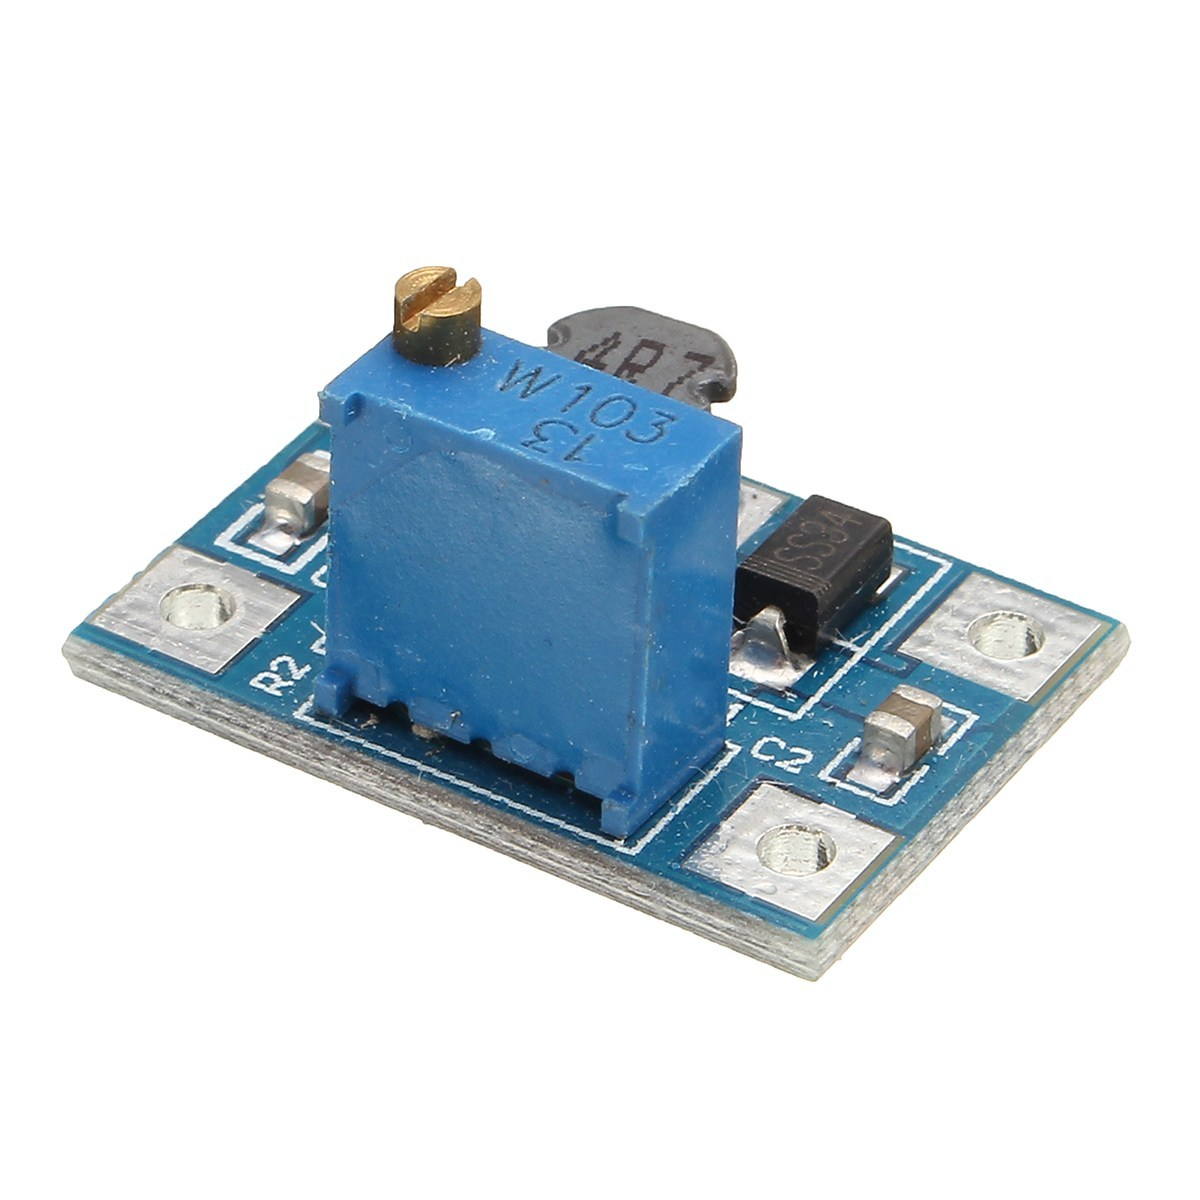 2016 Hot 1pc Boost Converter Step Up Module Power Supply 600w Dc 150w 10 32v To 12 35v Bb 51 182191067460 10x Sx1308 2a Adjustable